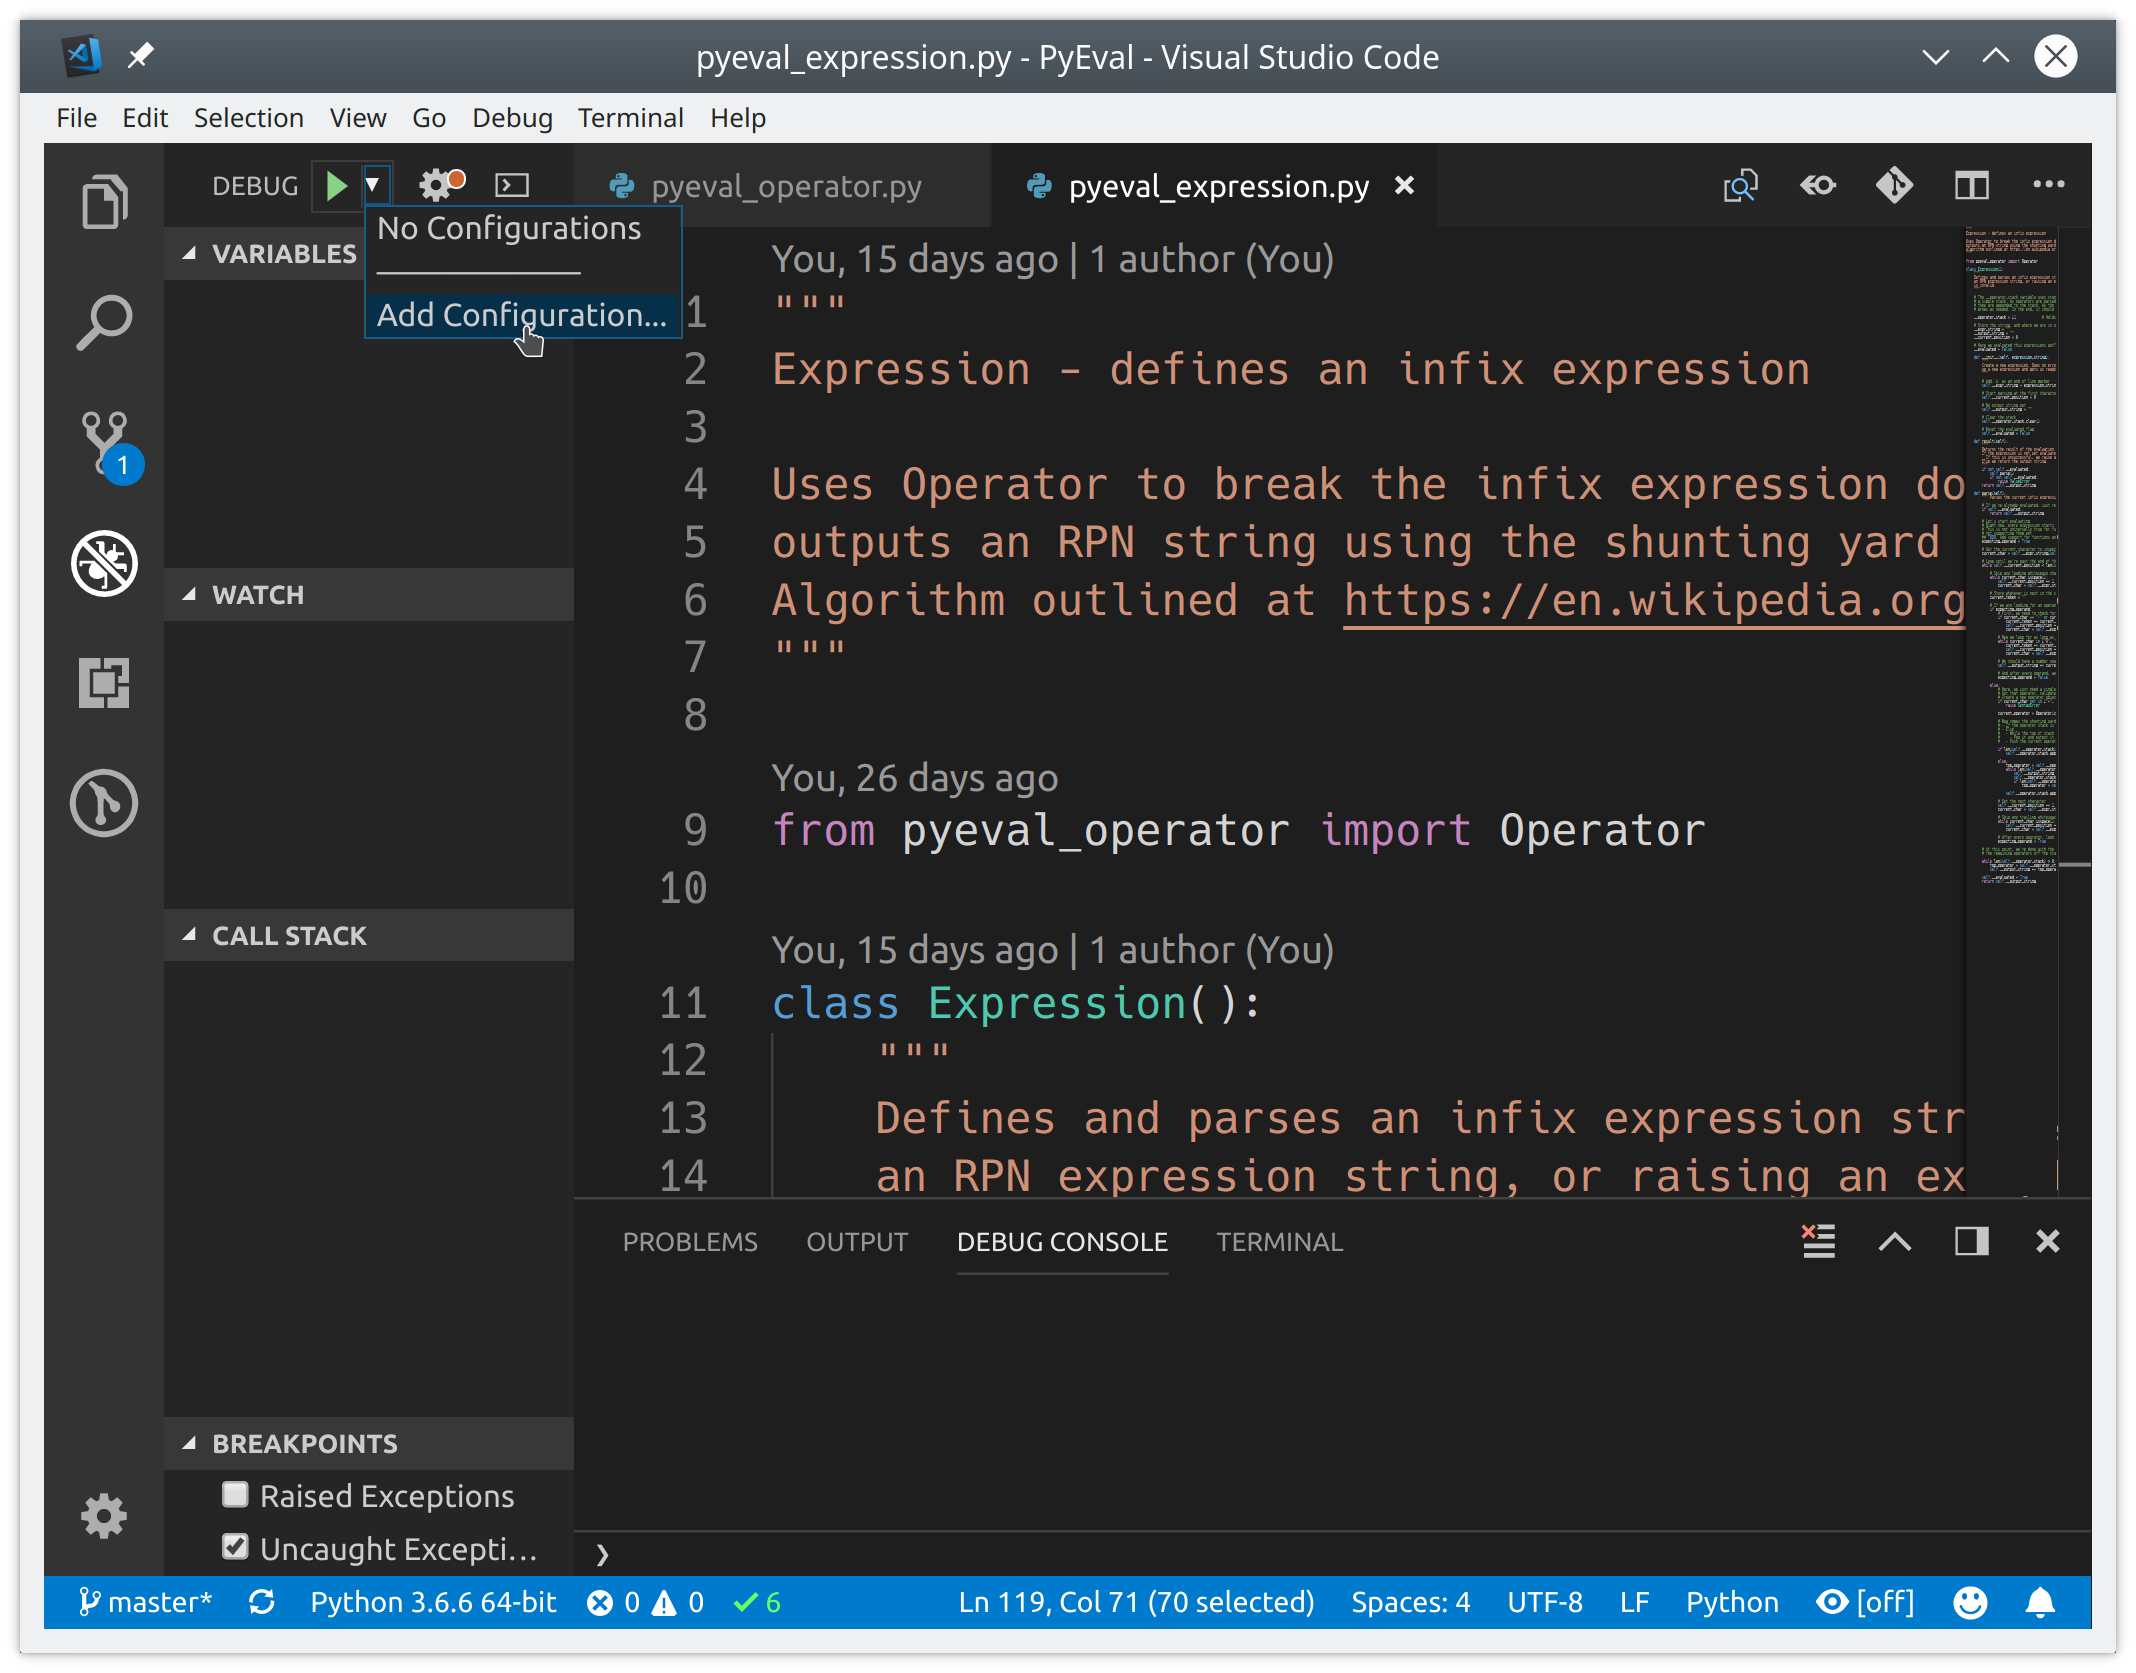 Adding a new debug configuration to VSCode